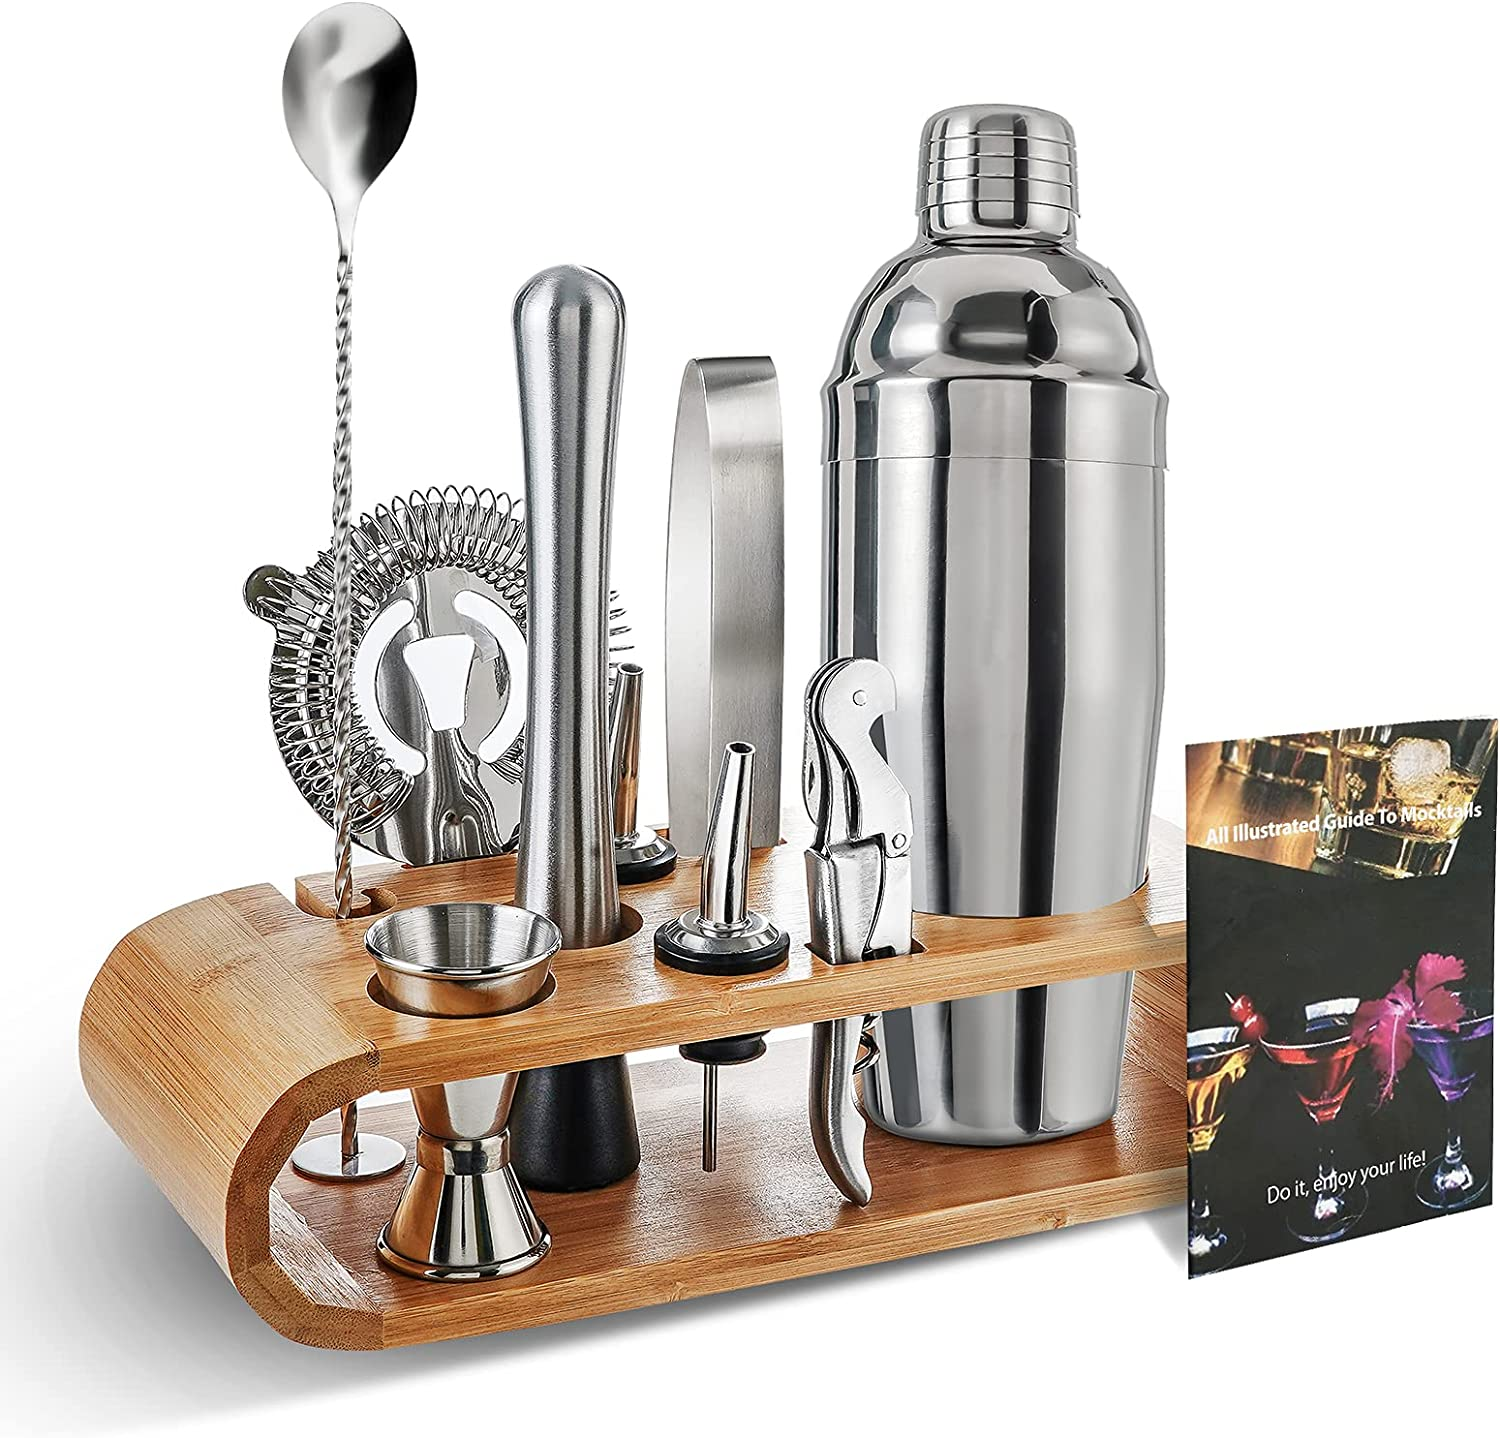 Cocktail Shaker Set with Stand Mixing Kit High sold out order Bartender for Drink